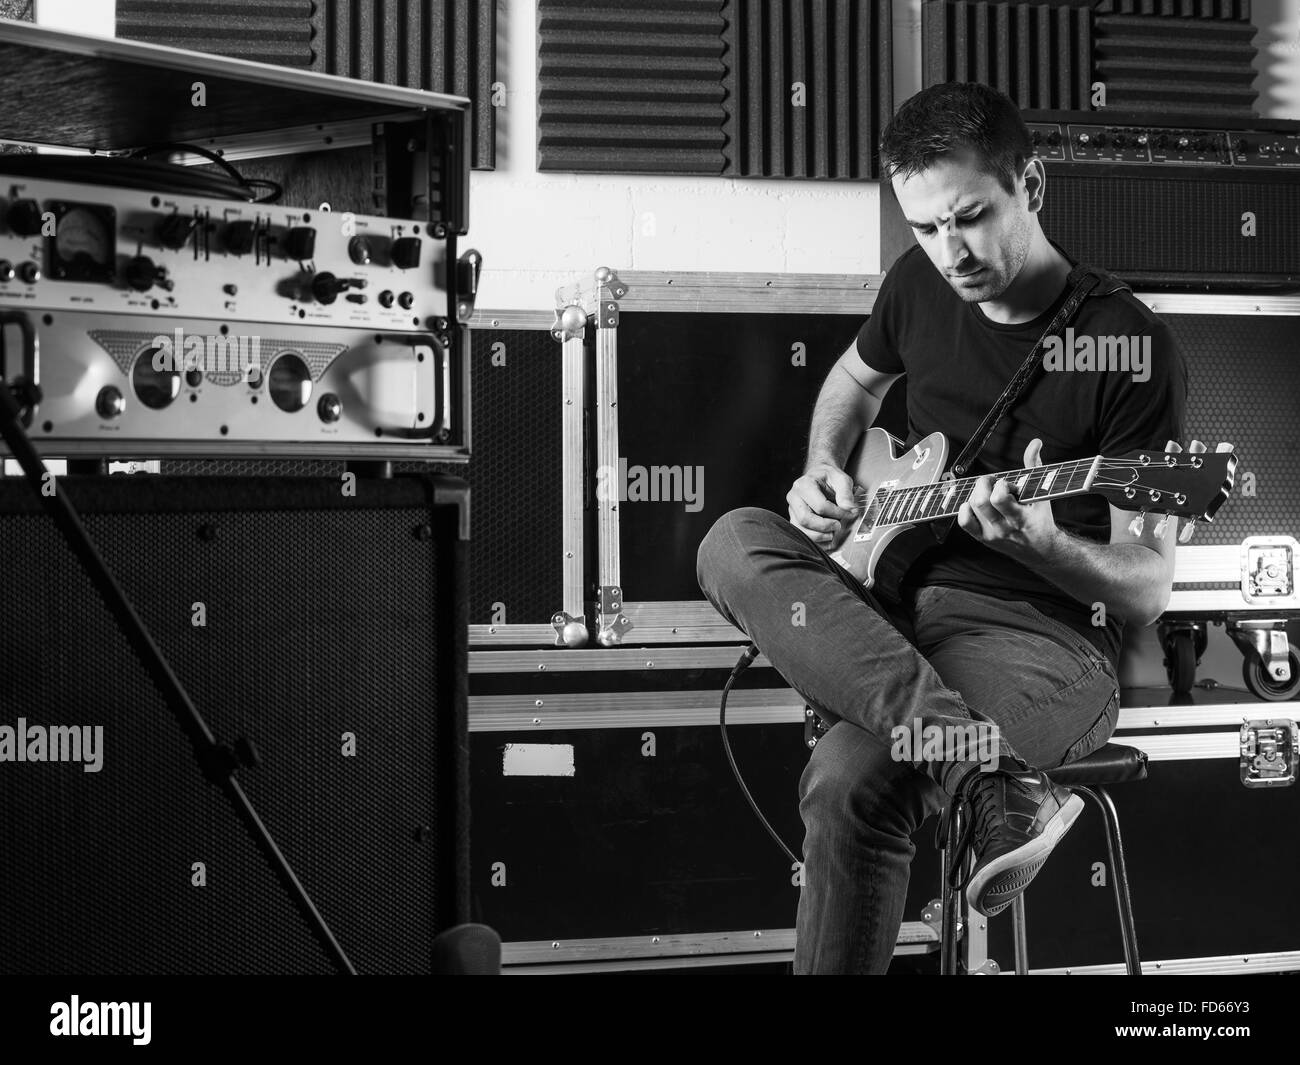 Photo of a man sitting backstage practicing his guitar. - Stock Image